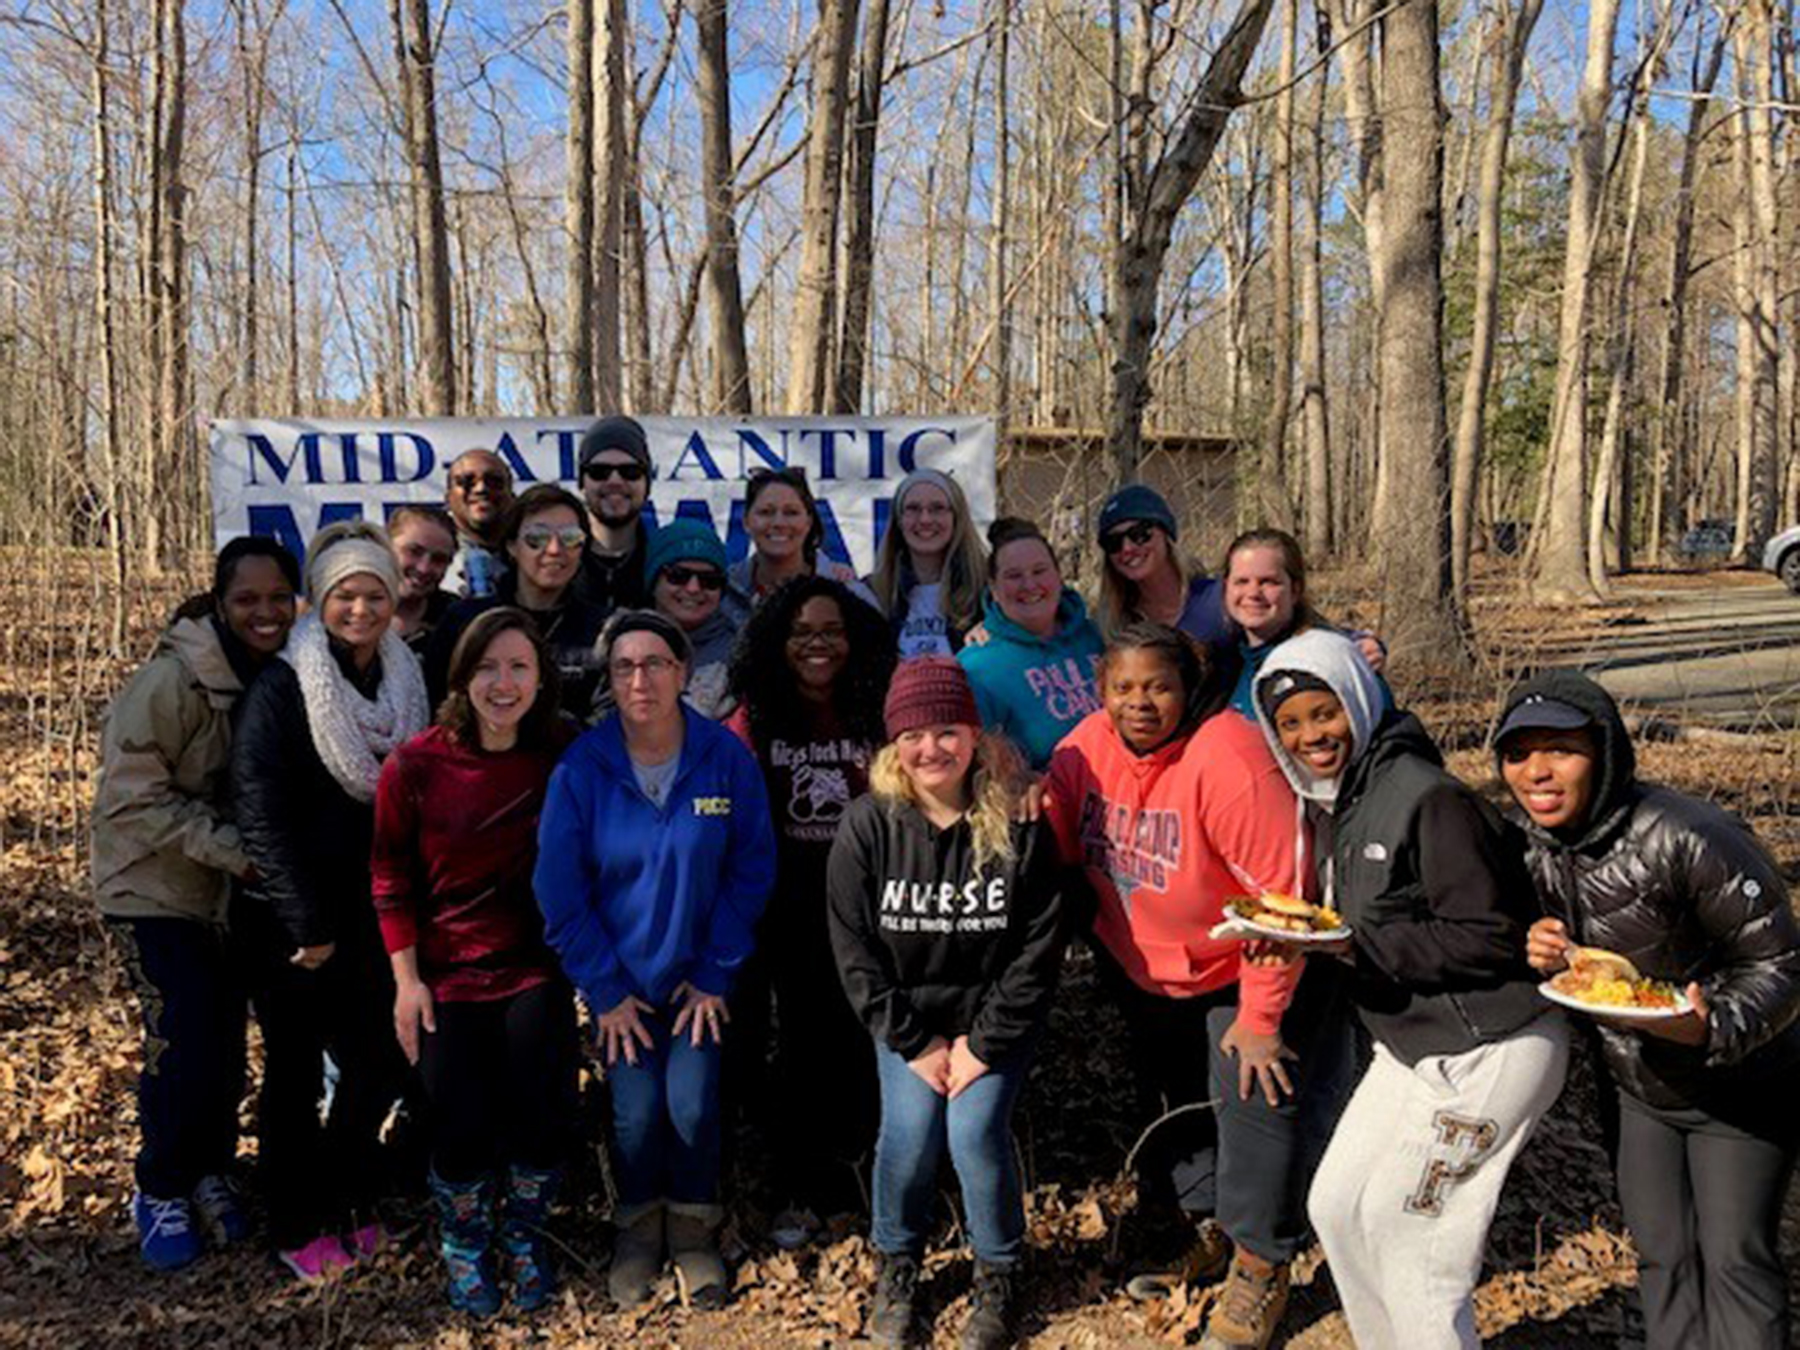 Paul D. Camp Community College nursing students participate in wilderness adventure activity